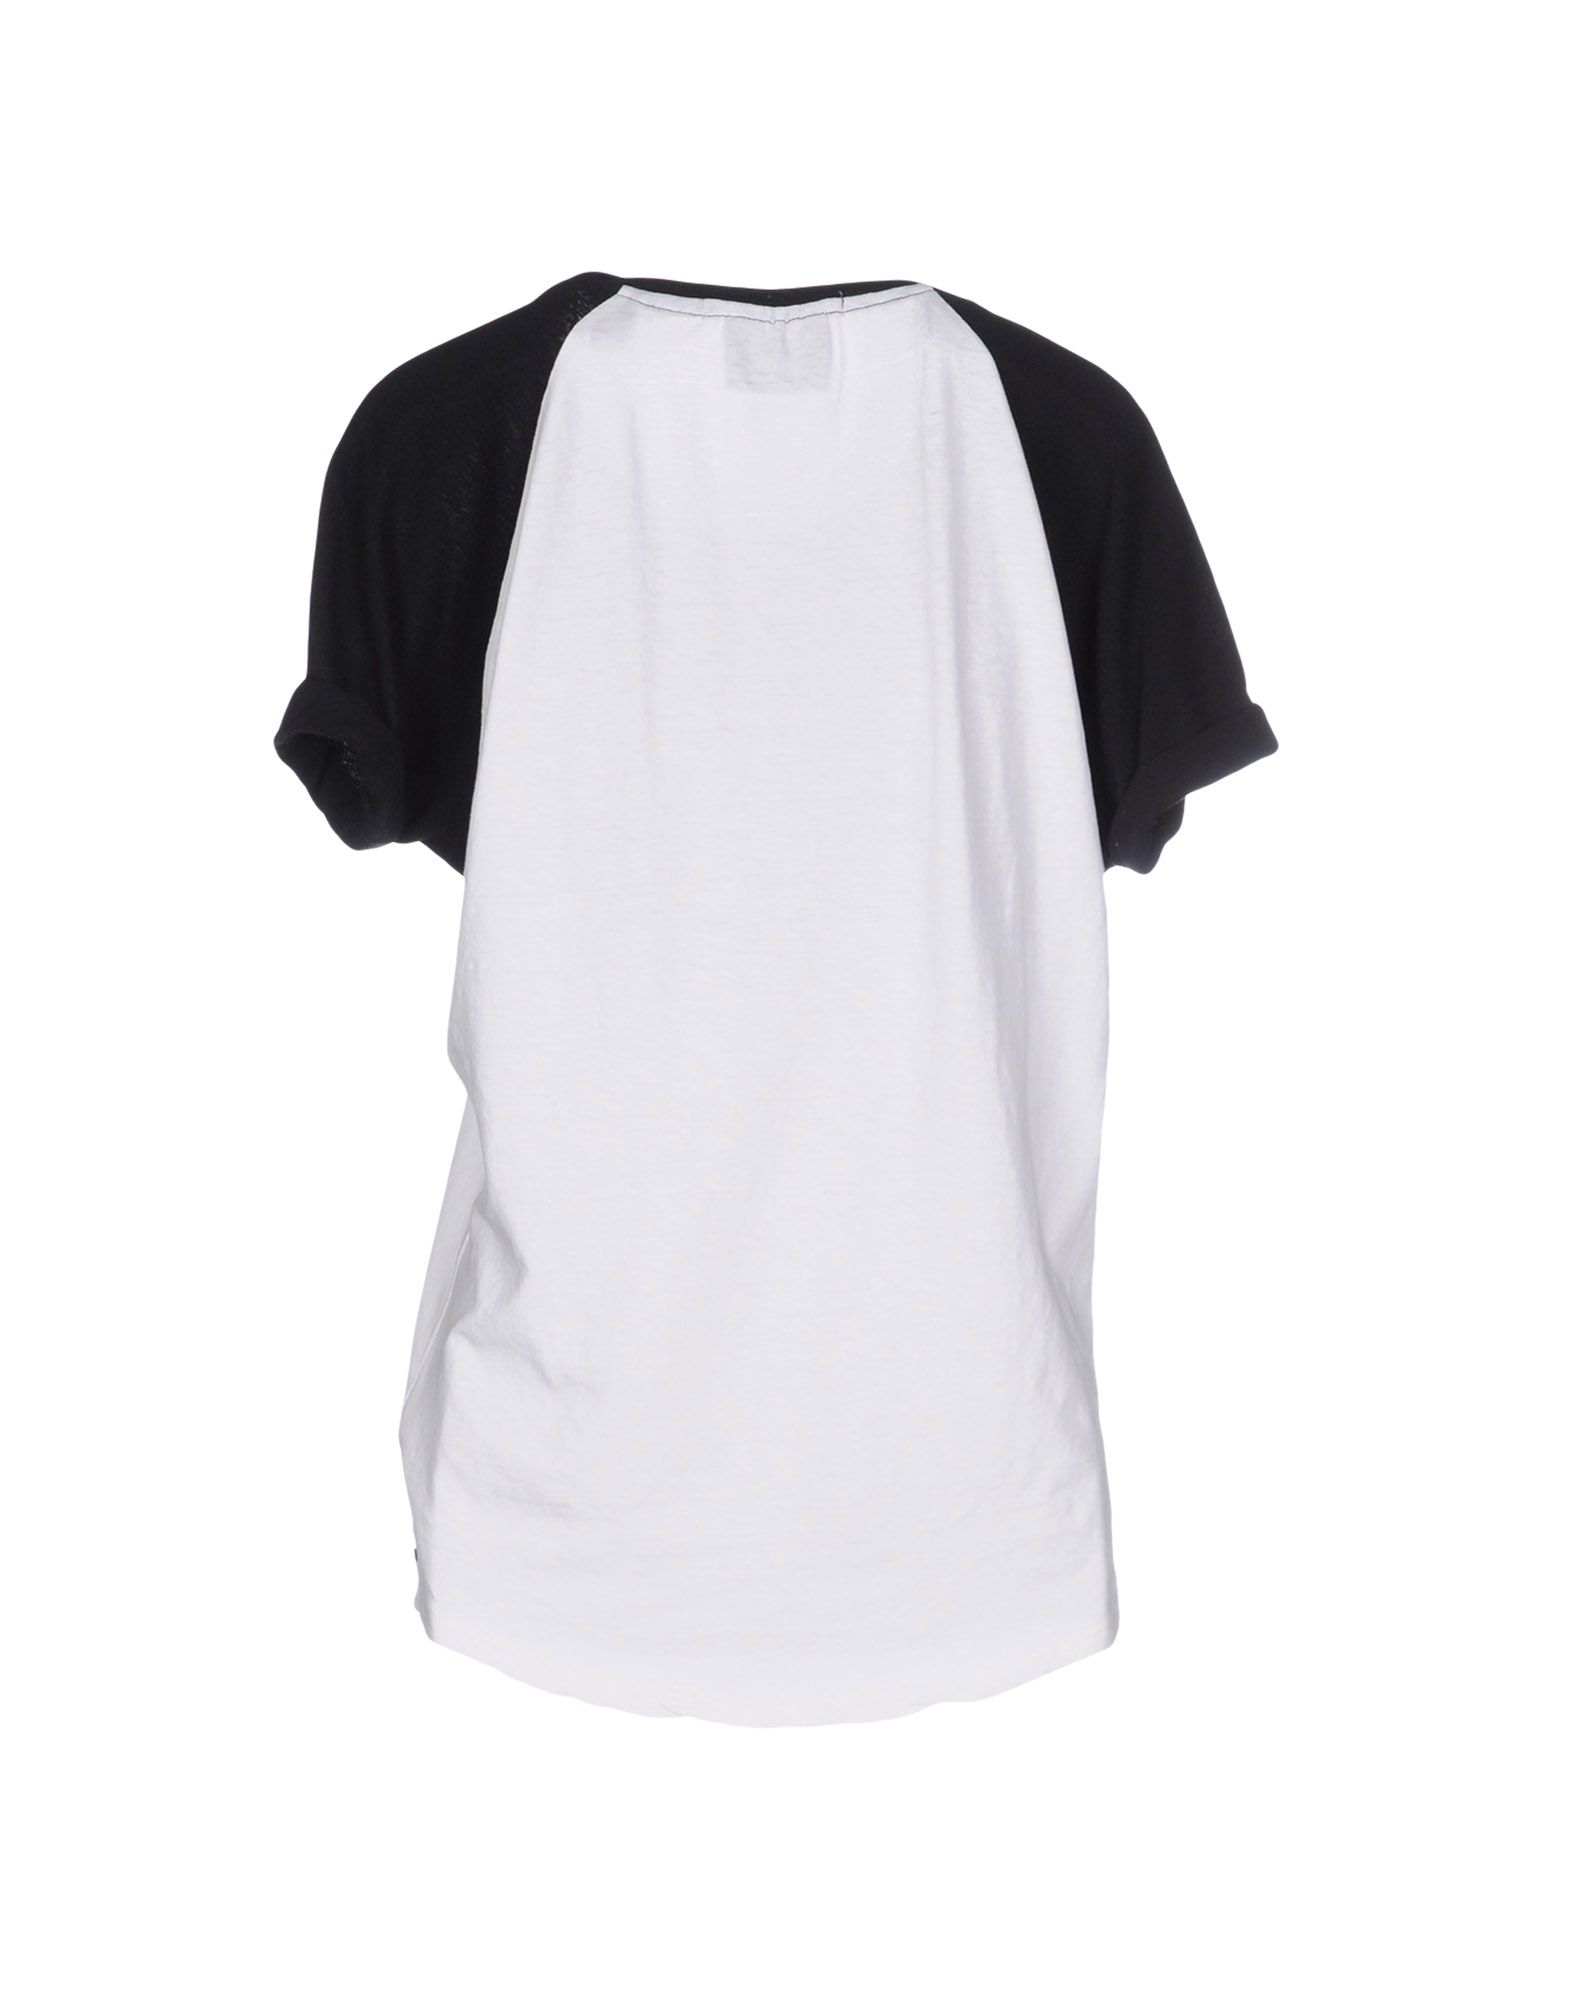 Lyst maison scotch t shirt in white for About maison scotch